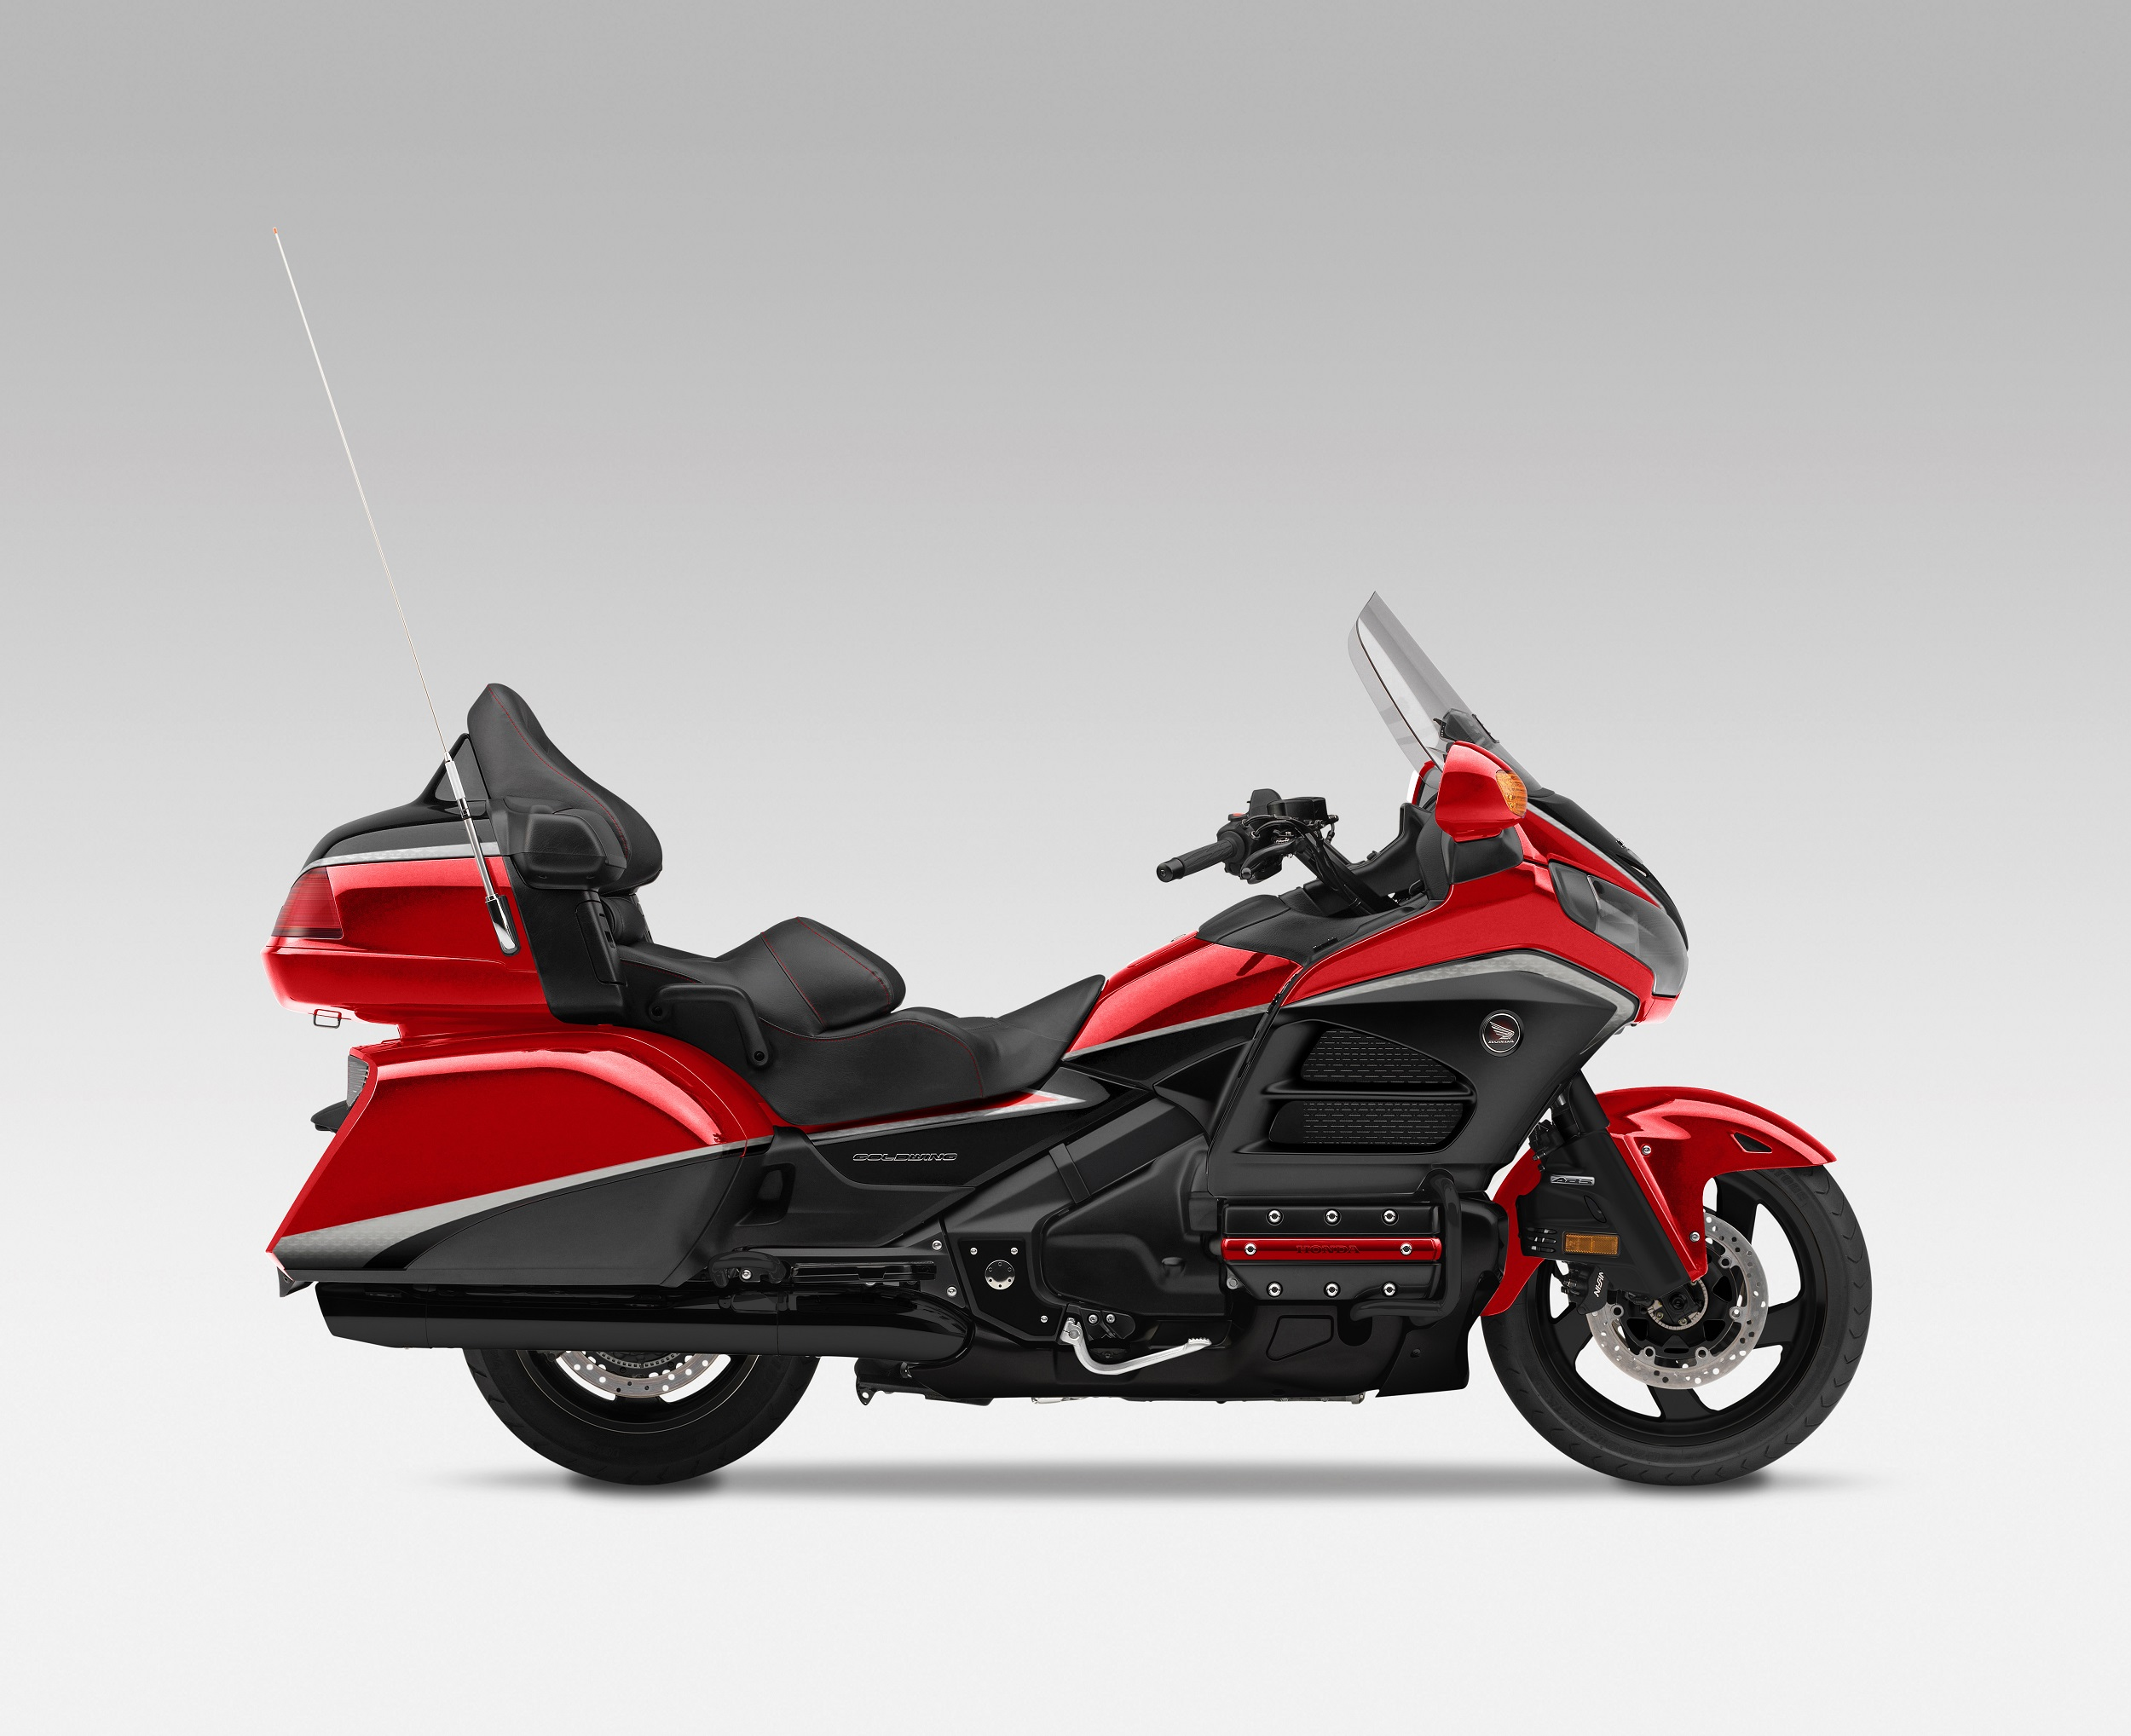 Honda Gold Wing GL1800 launched at Rs. 28.50 lakh